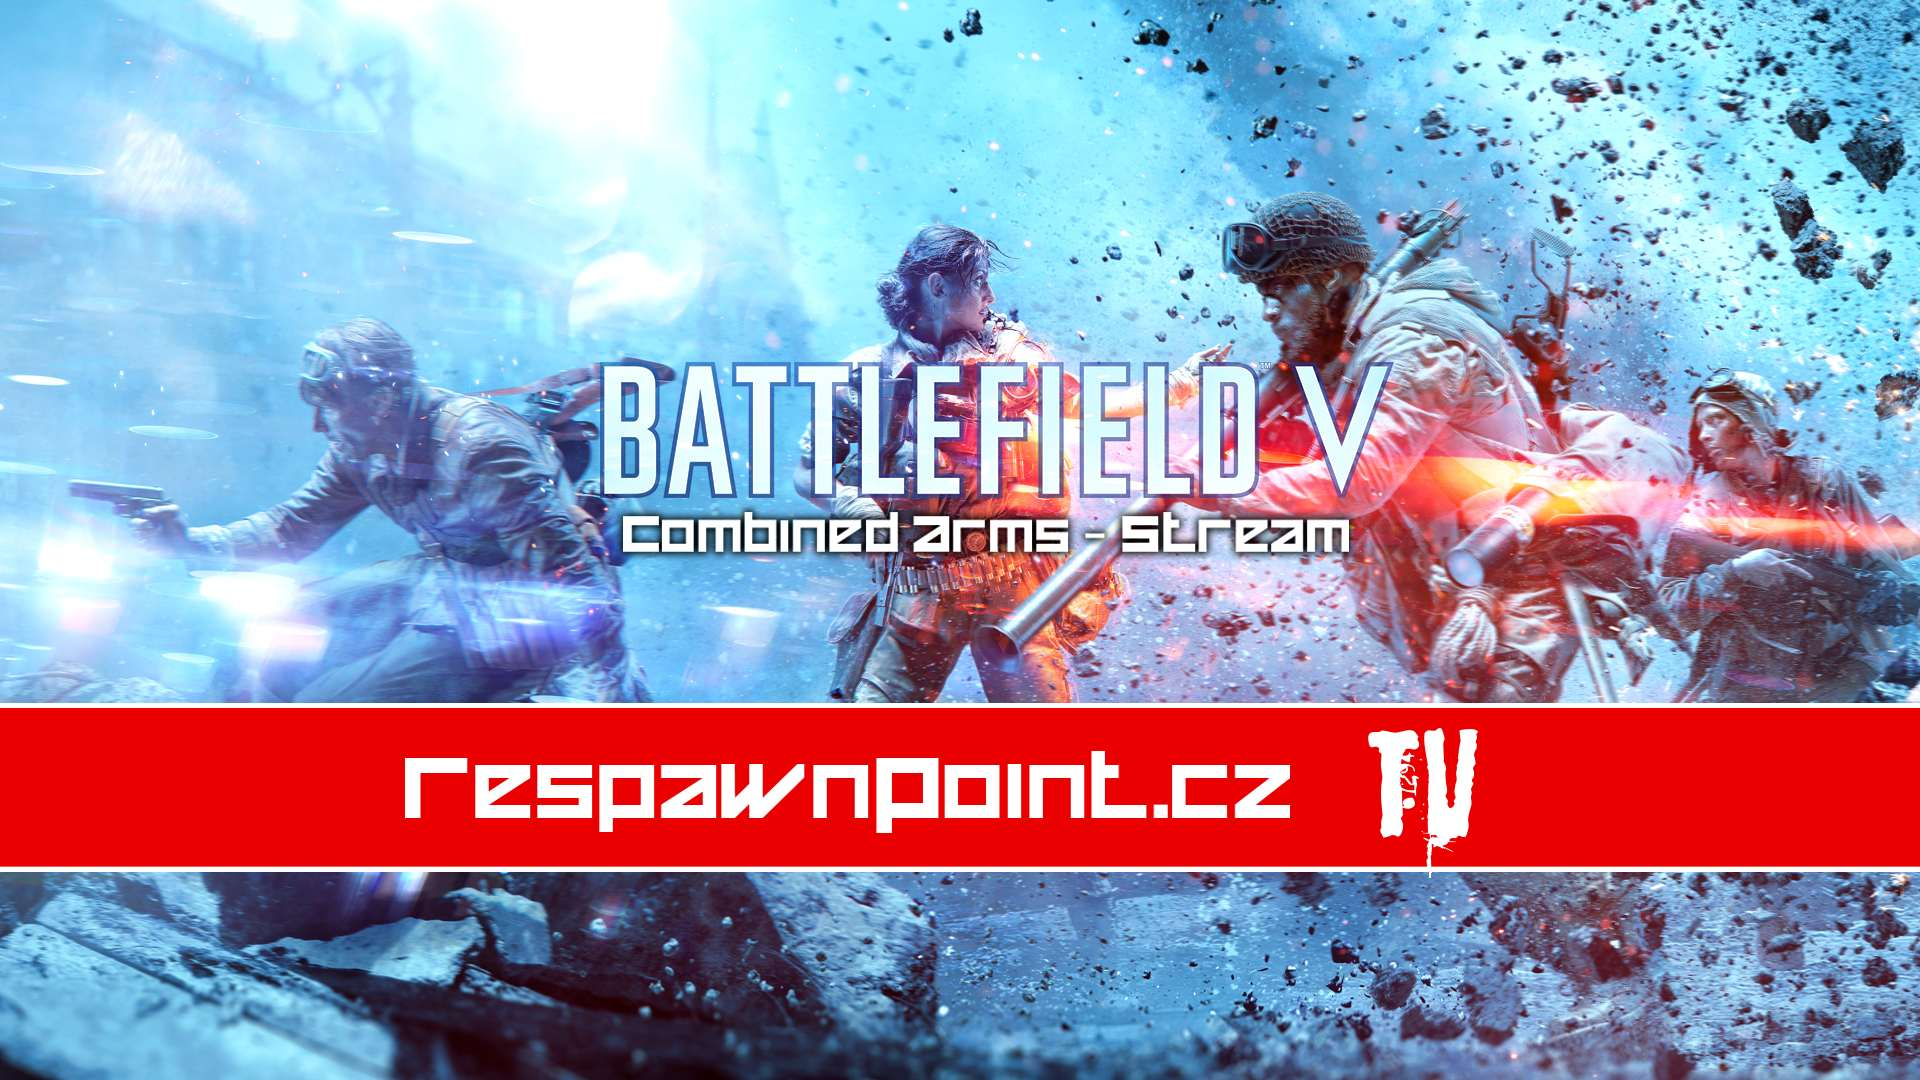 Battlefield V – Combined Arms Stream